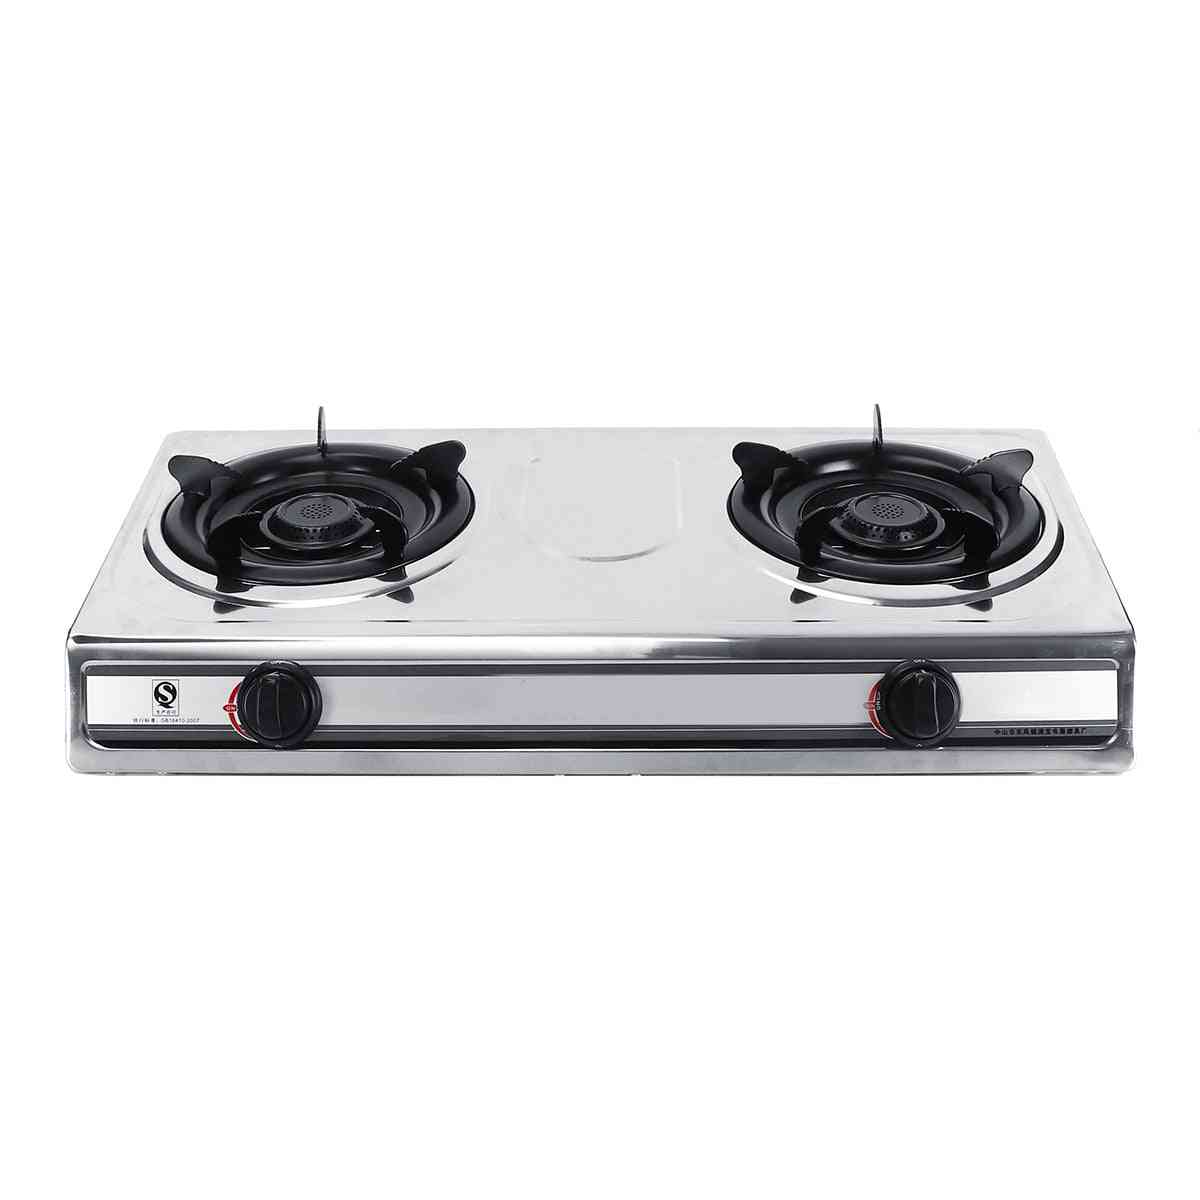 Fierce Double-stove & Benchtop Lpg Liquefied, Cooker Stove With Two Pots